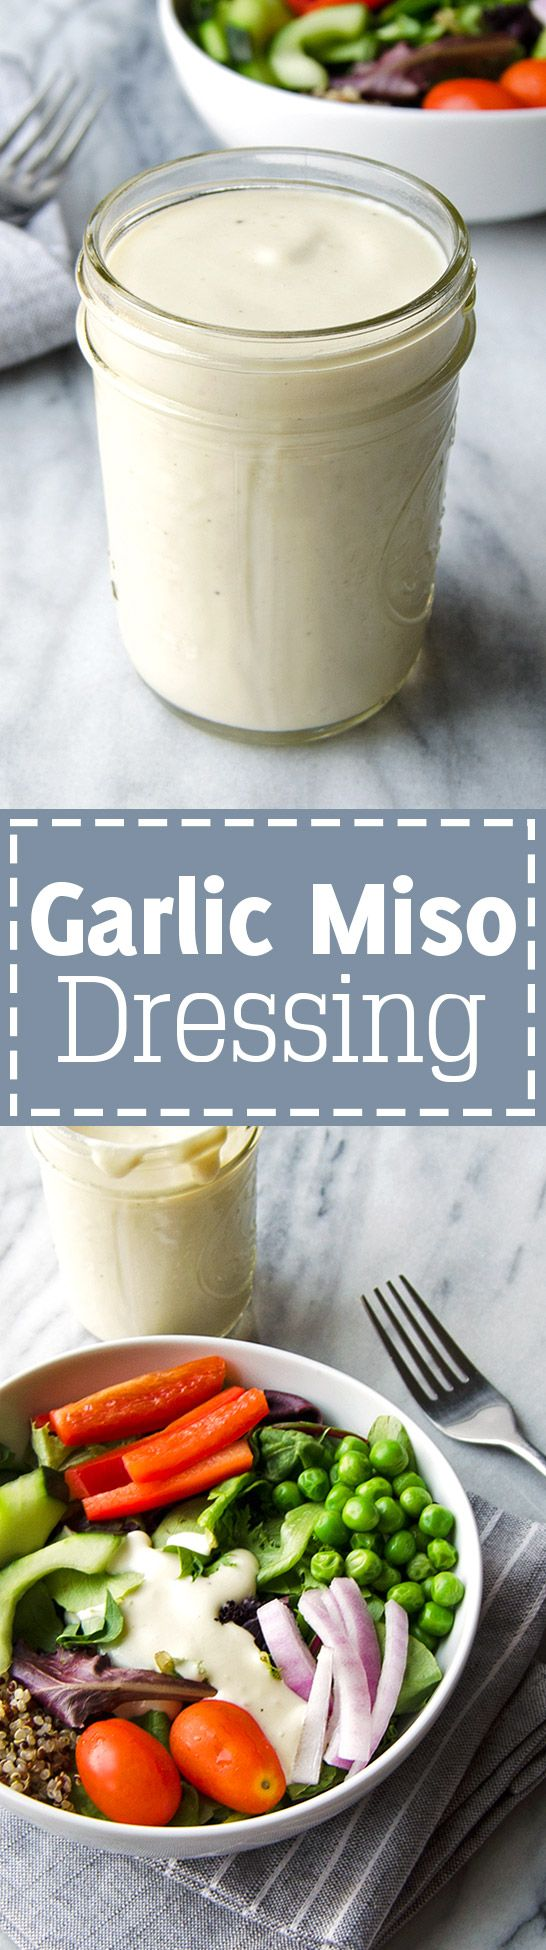 Red miso salad dressing recipe